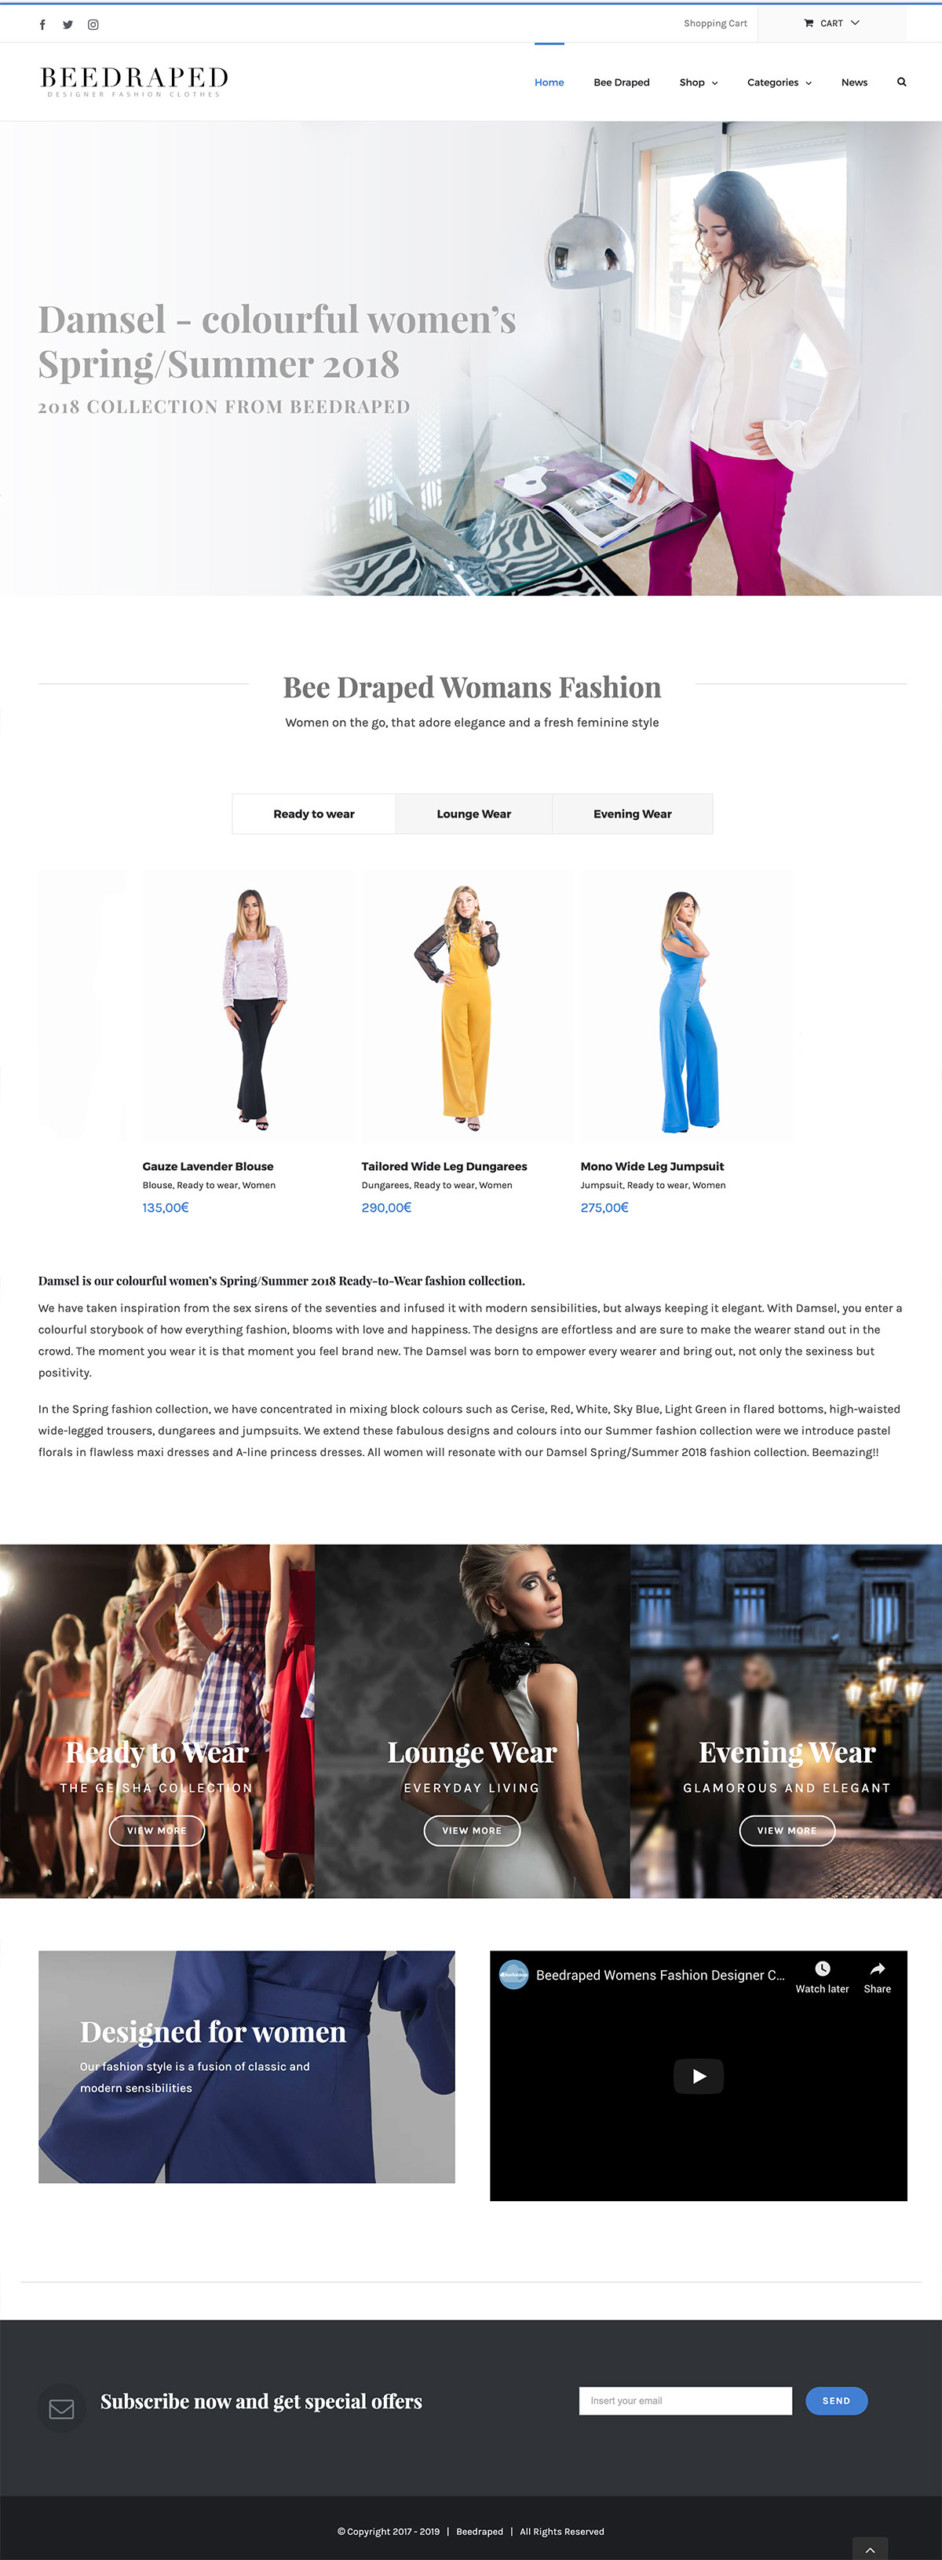 fashion designer website marbella fashion branding and clothing website